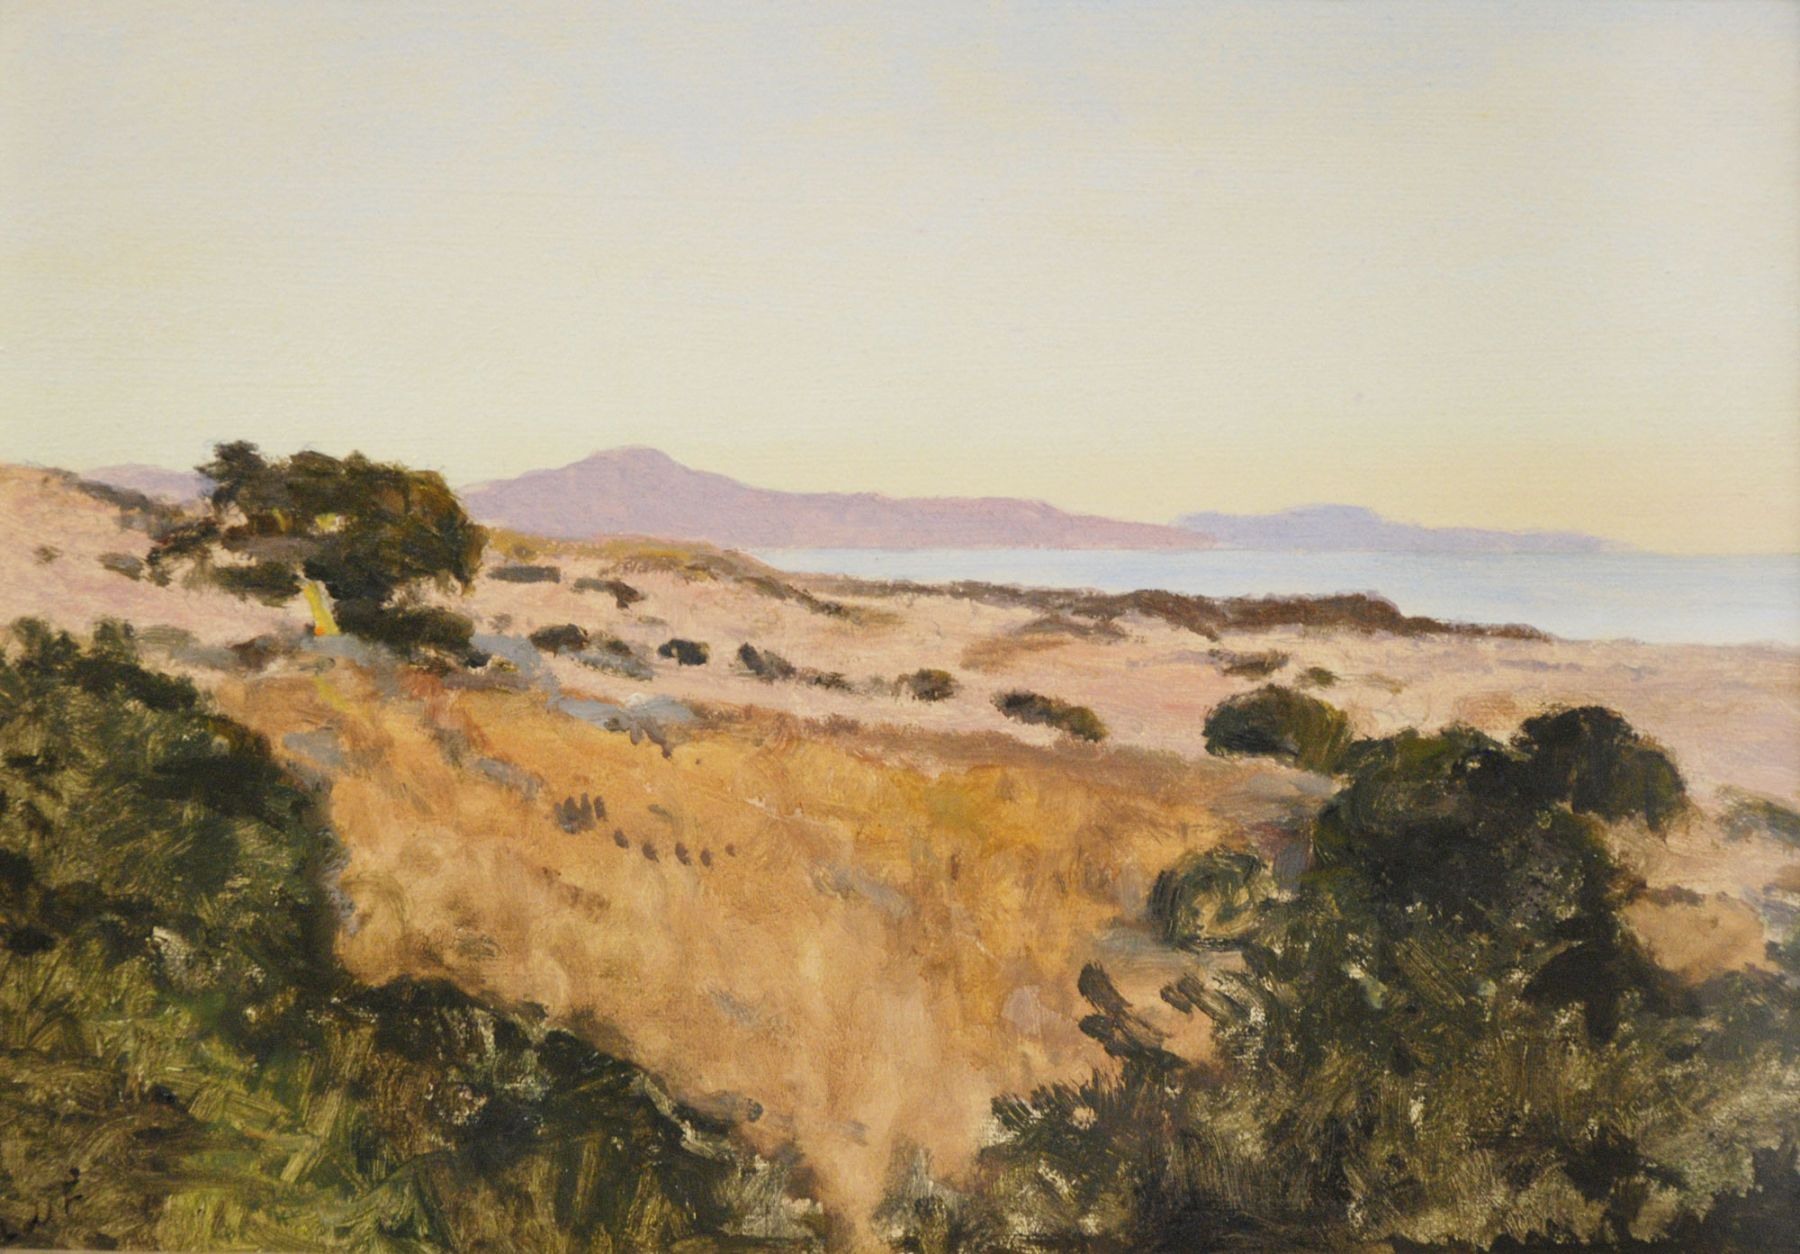 Lockwood de Forest (1850-1932), Santa Barbara to the Rincon to Point Mugu, c. 1915